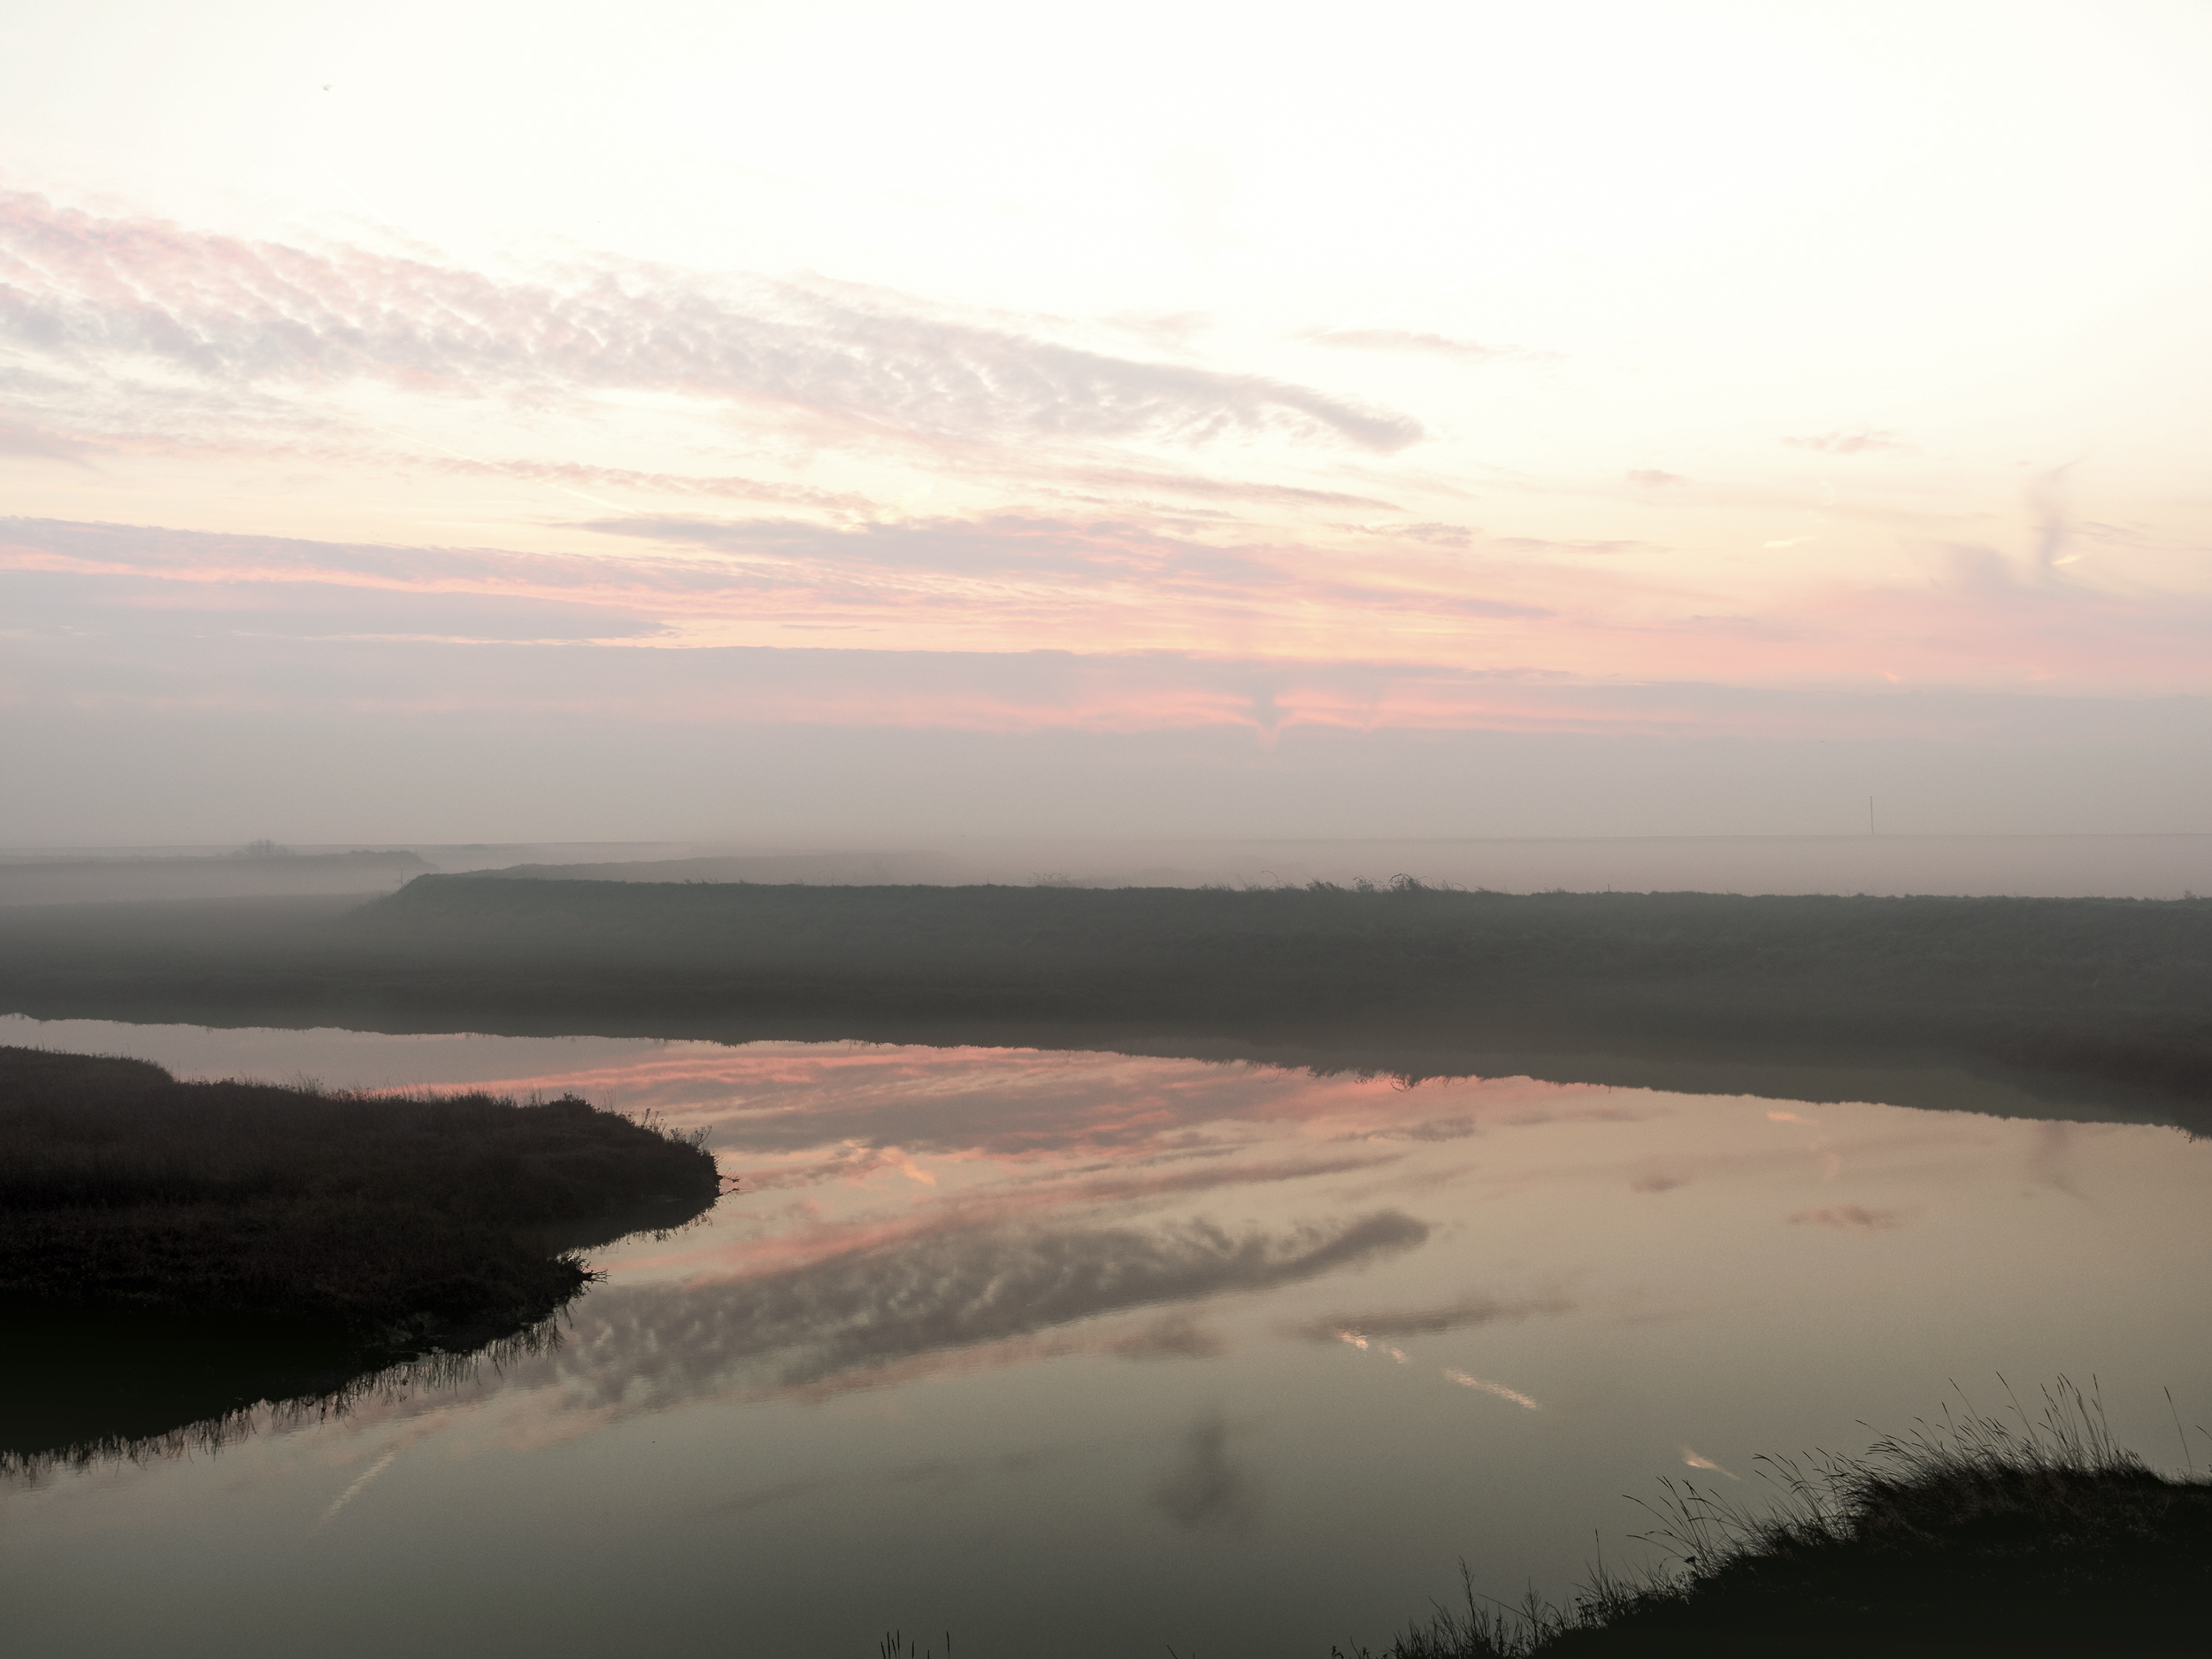 An amble to North Weir Point - One of my favourite local patches is the stroll down a short length of salt marsh between the road and the river at North Weir Point. This is where the river Ore reaches the sea at the southern tip of Orford Ness.This was a magical cold morningn in late February 2019 with the happy coincidence of dawn and high tide.Starting with a view to the north-east across the creek with the sun still below the horizon